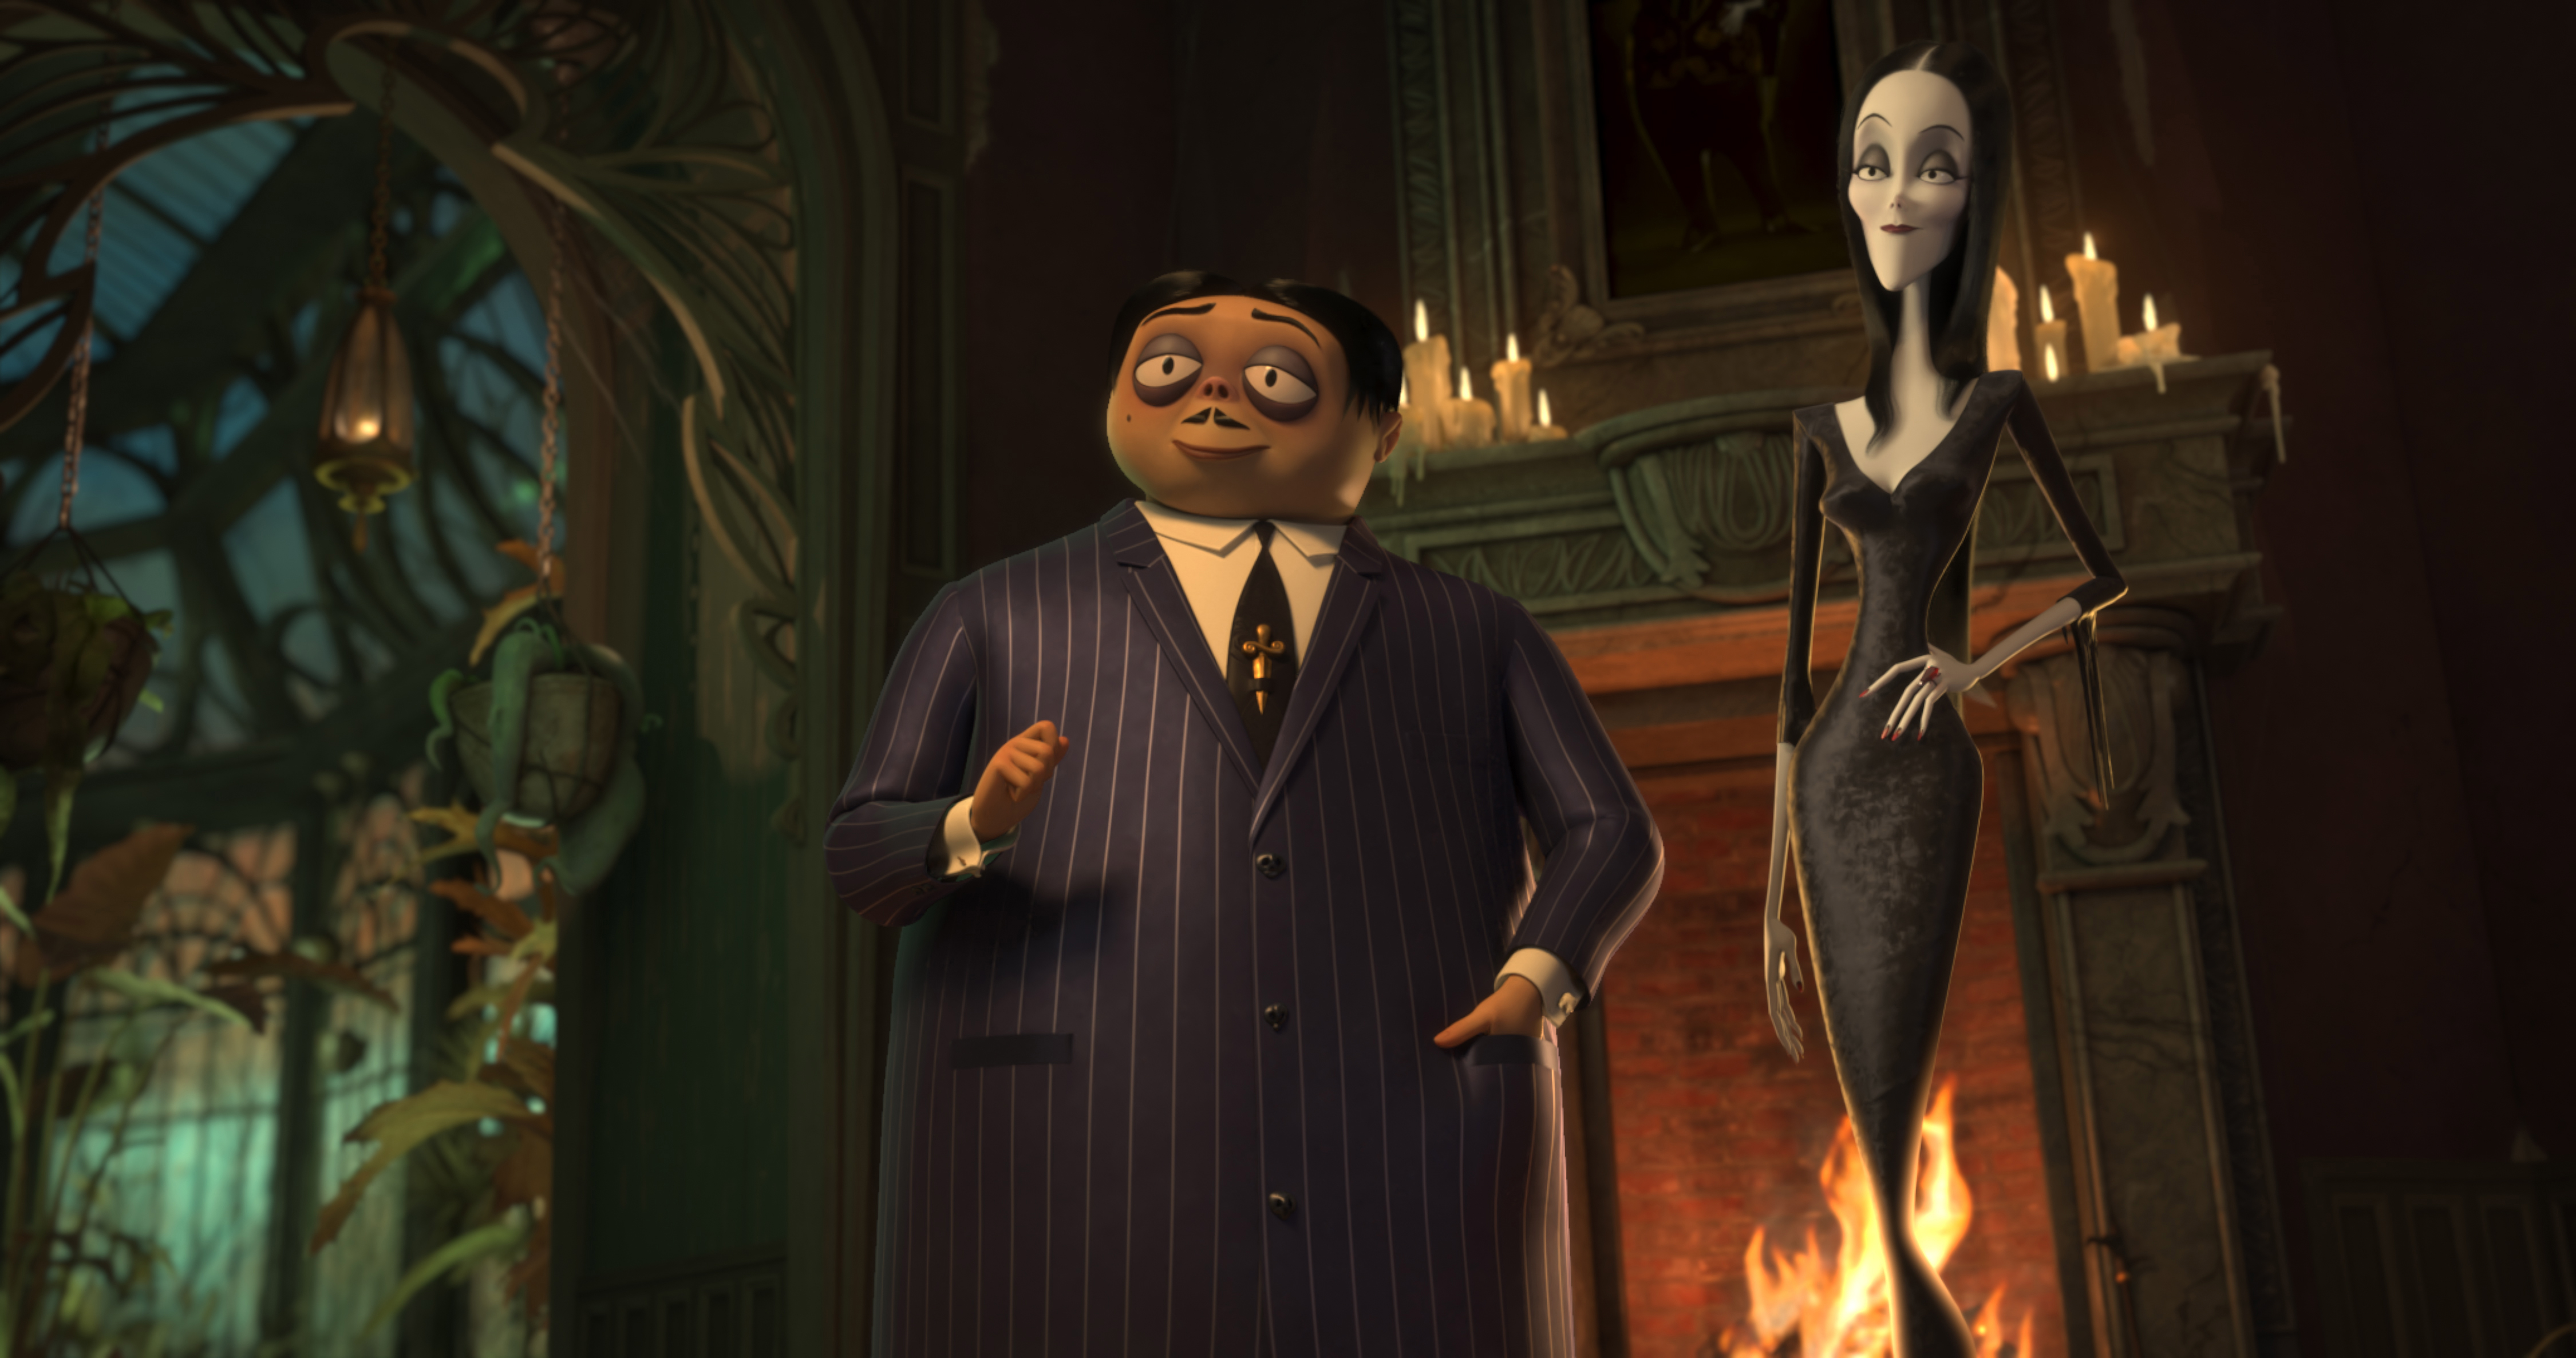 Movie Review: THE ADDAMS FAMILY (2019)